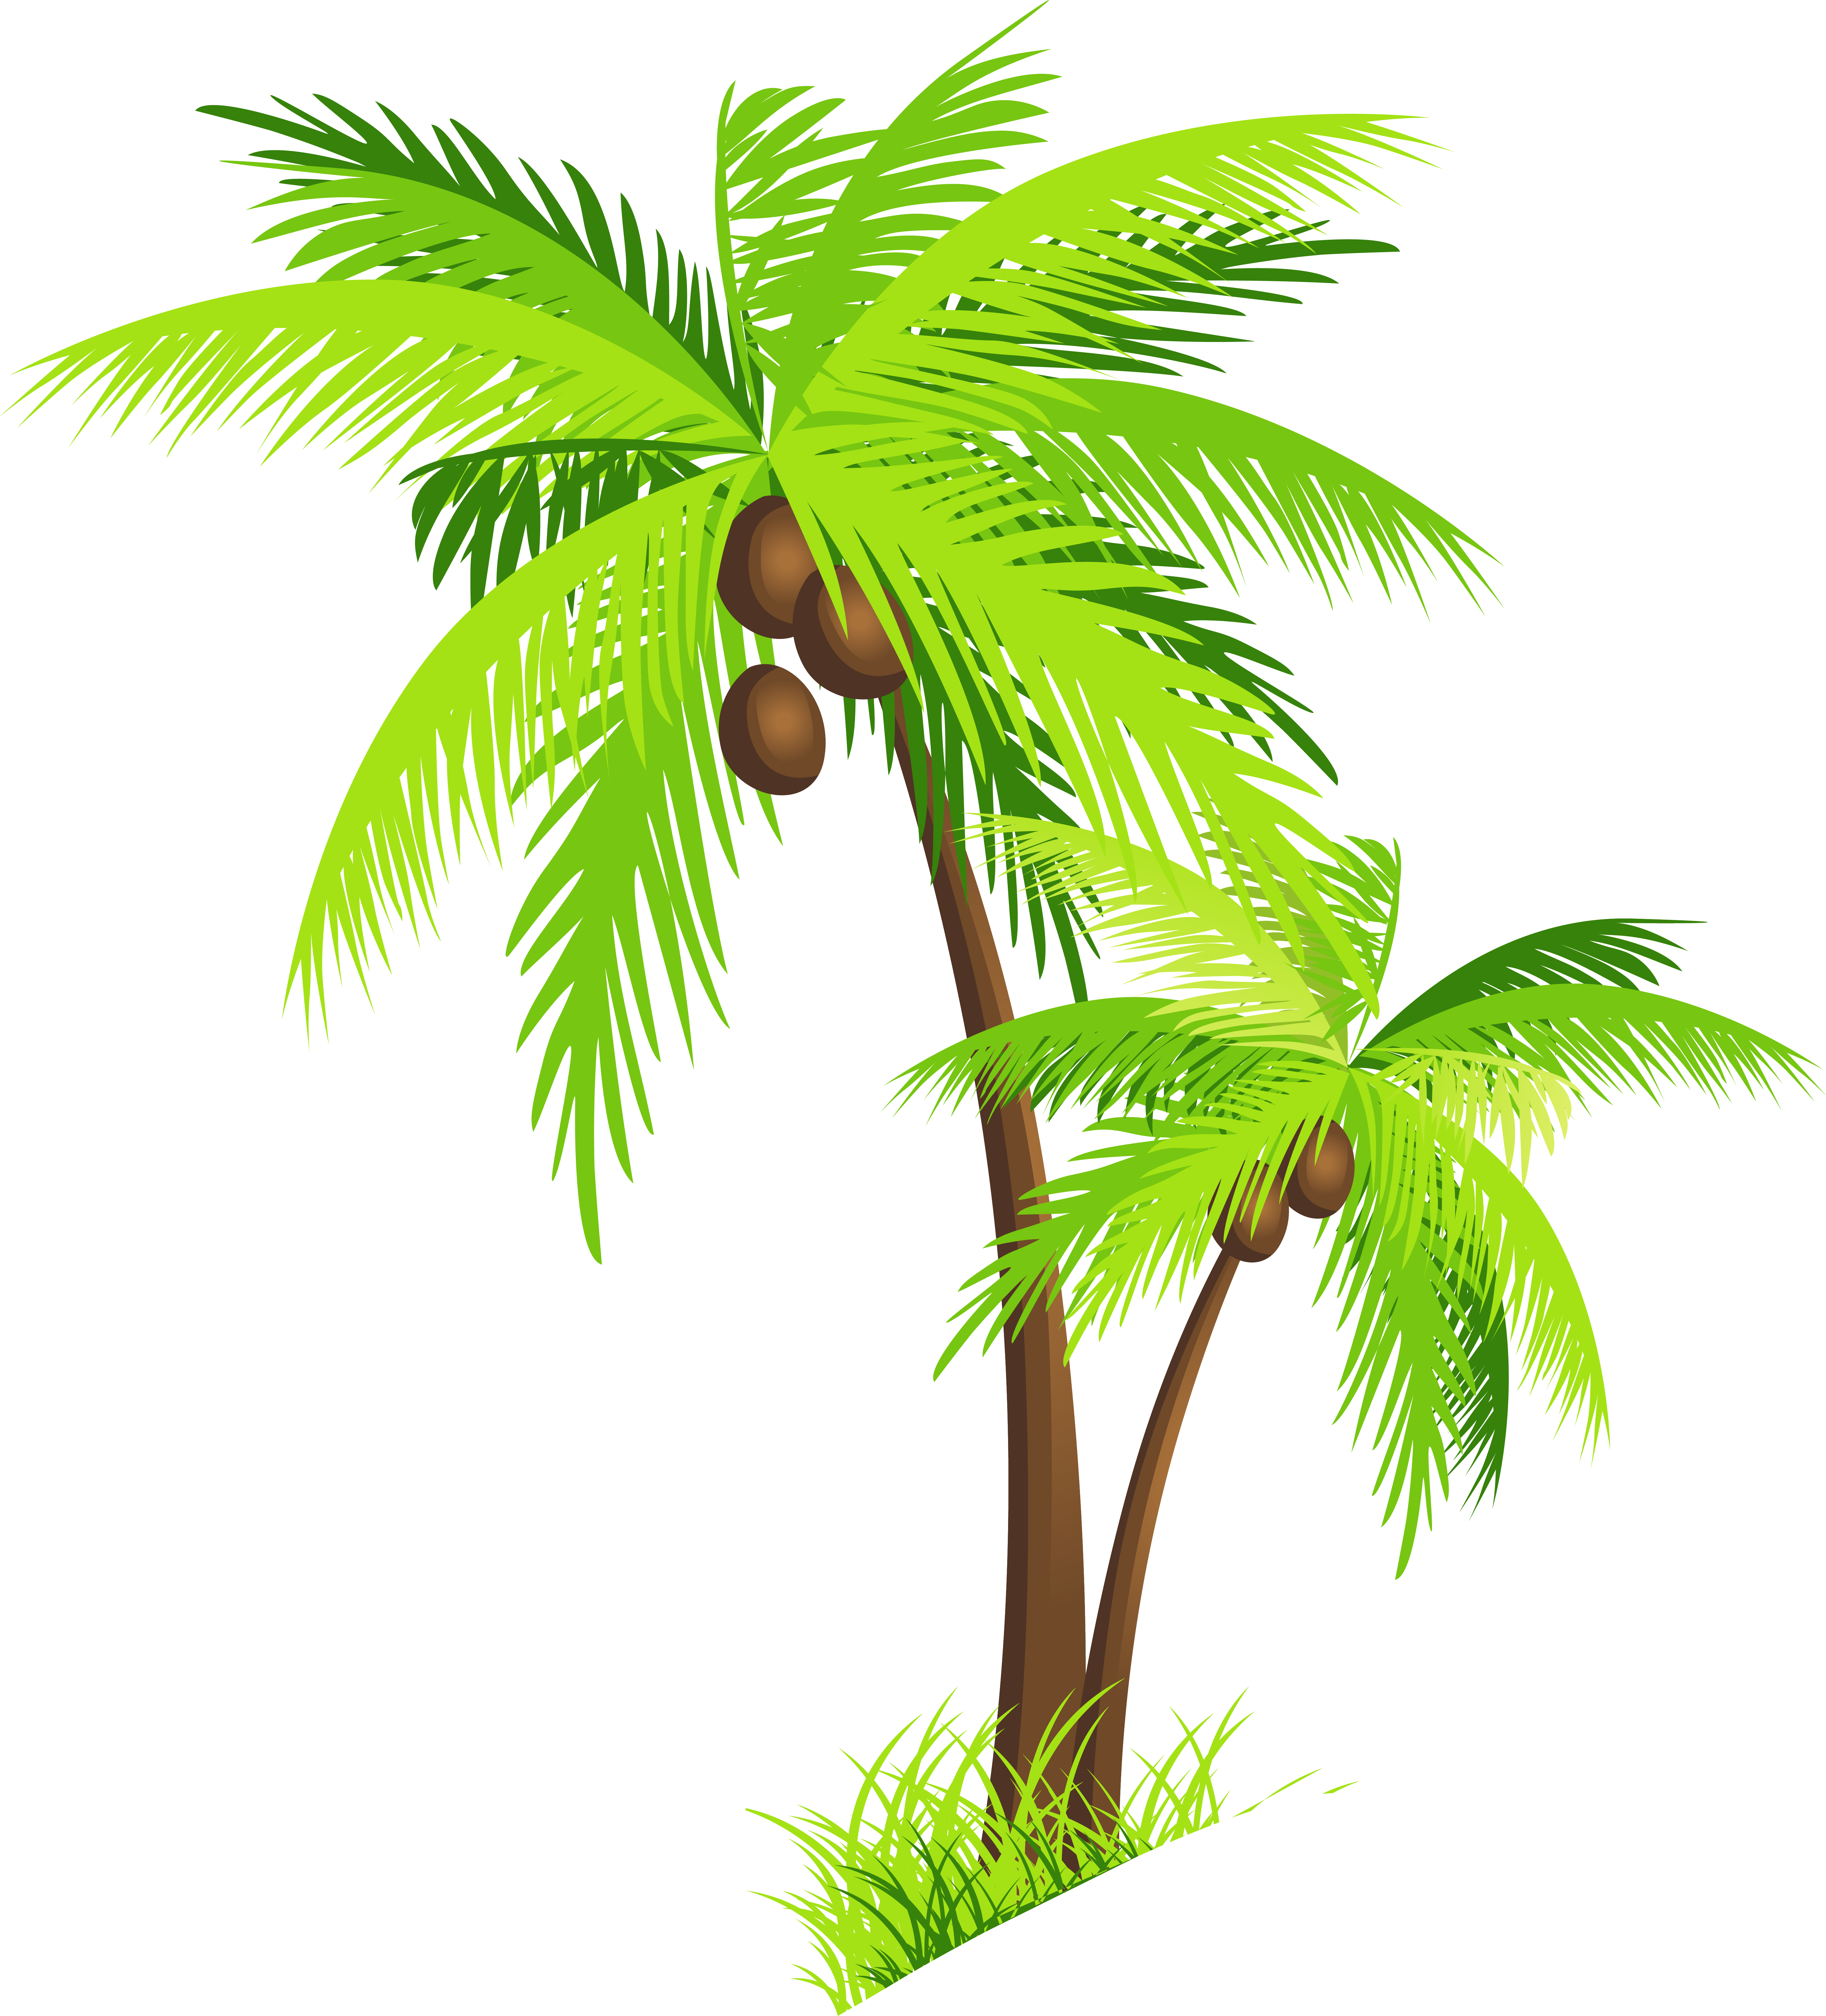 Png Coconut Tree - Coconut Tree Png Clipart, Transparent background PNG HD thumbnail